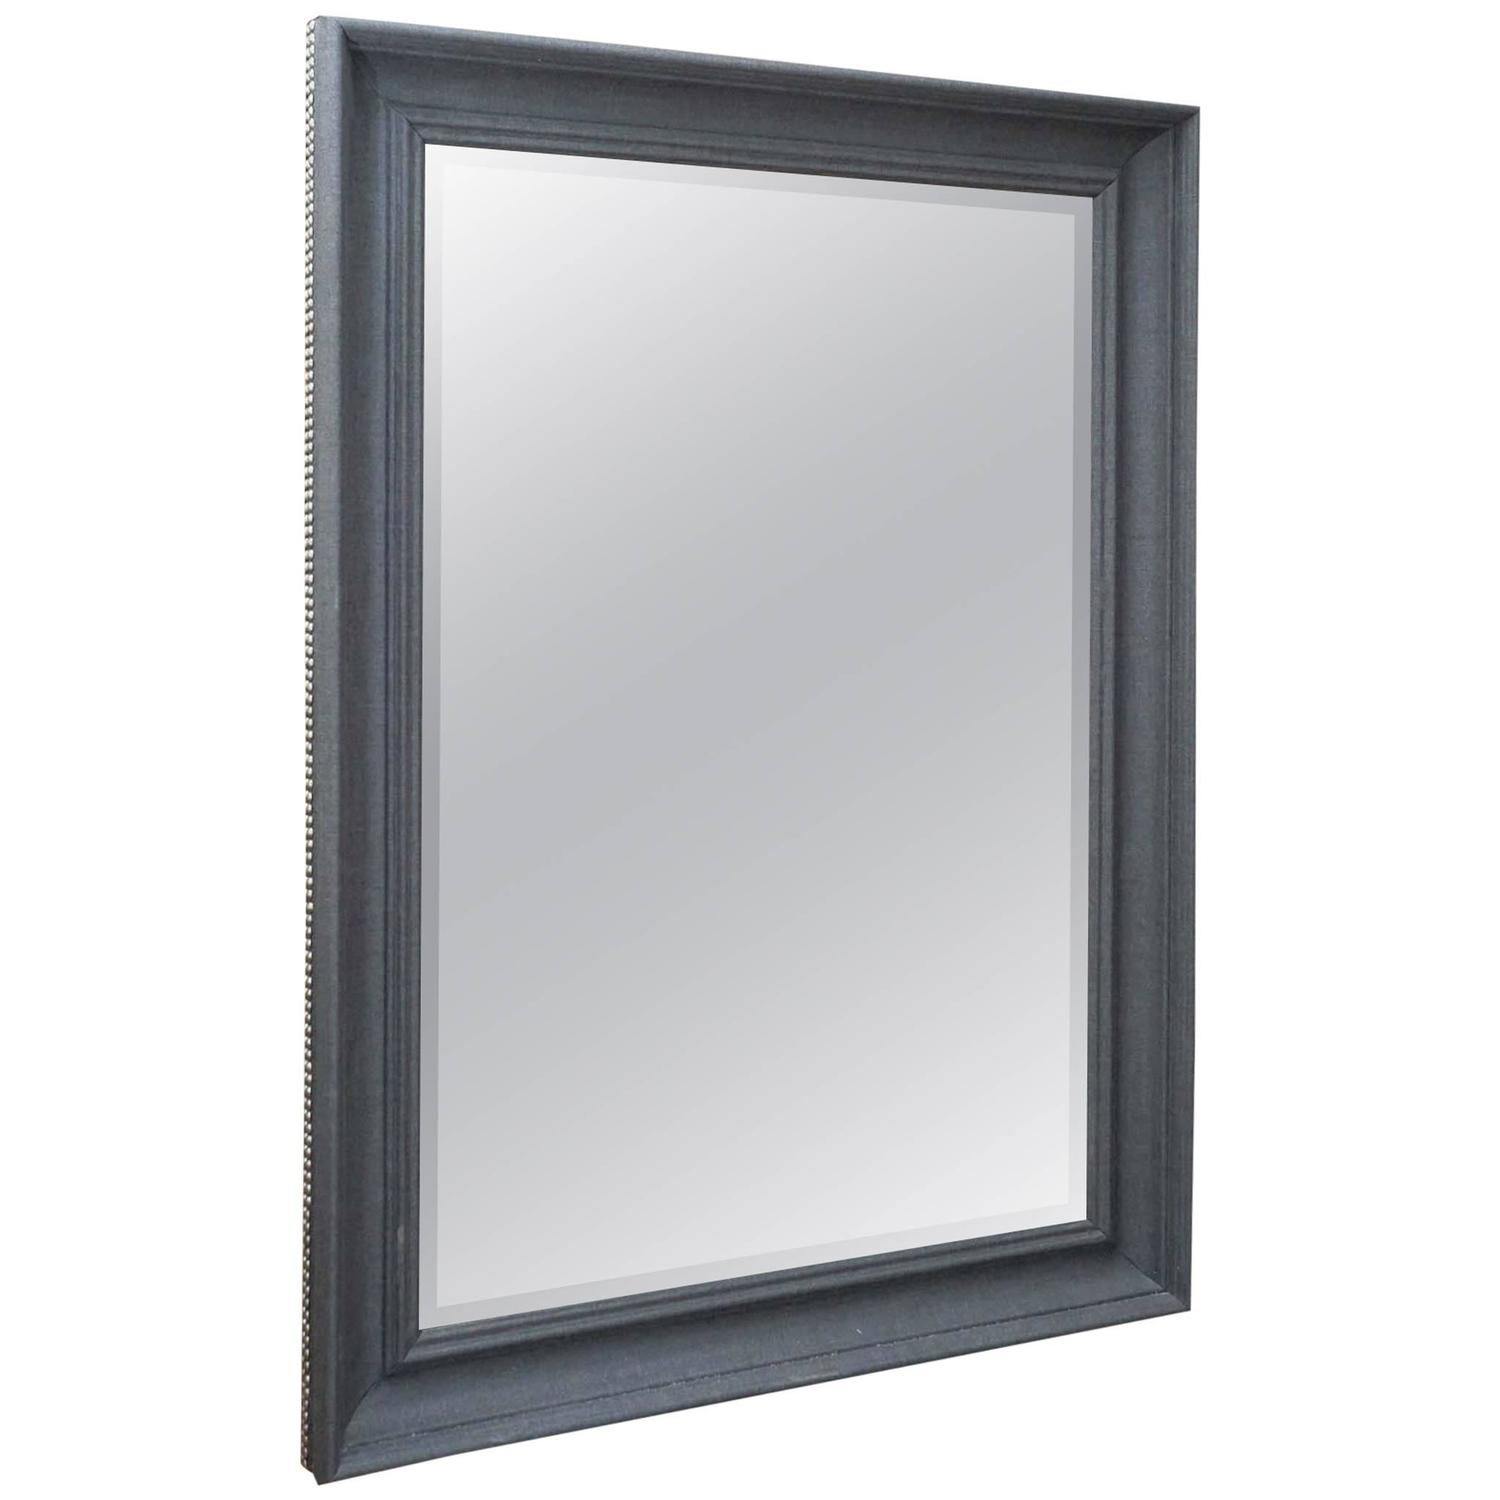 Grey flannel mirror for sale at 1stdibs for Gray full length mirror